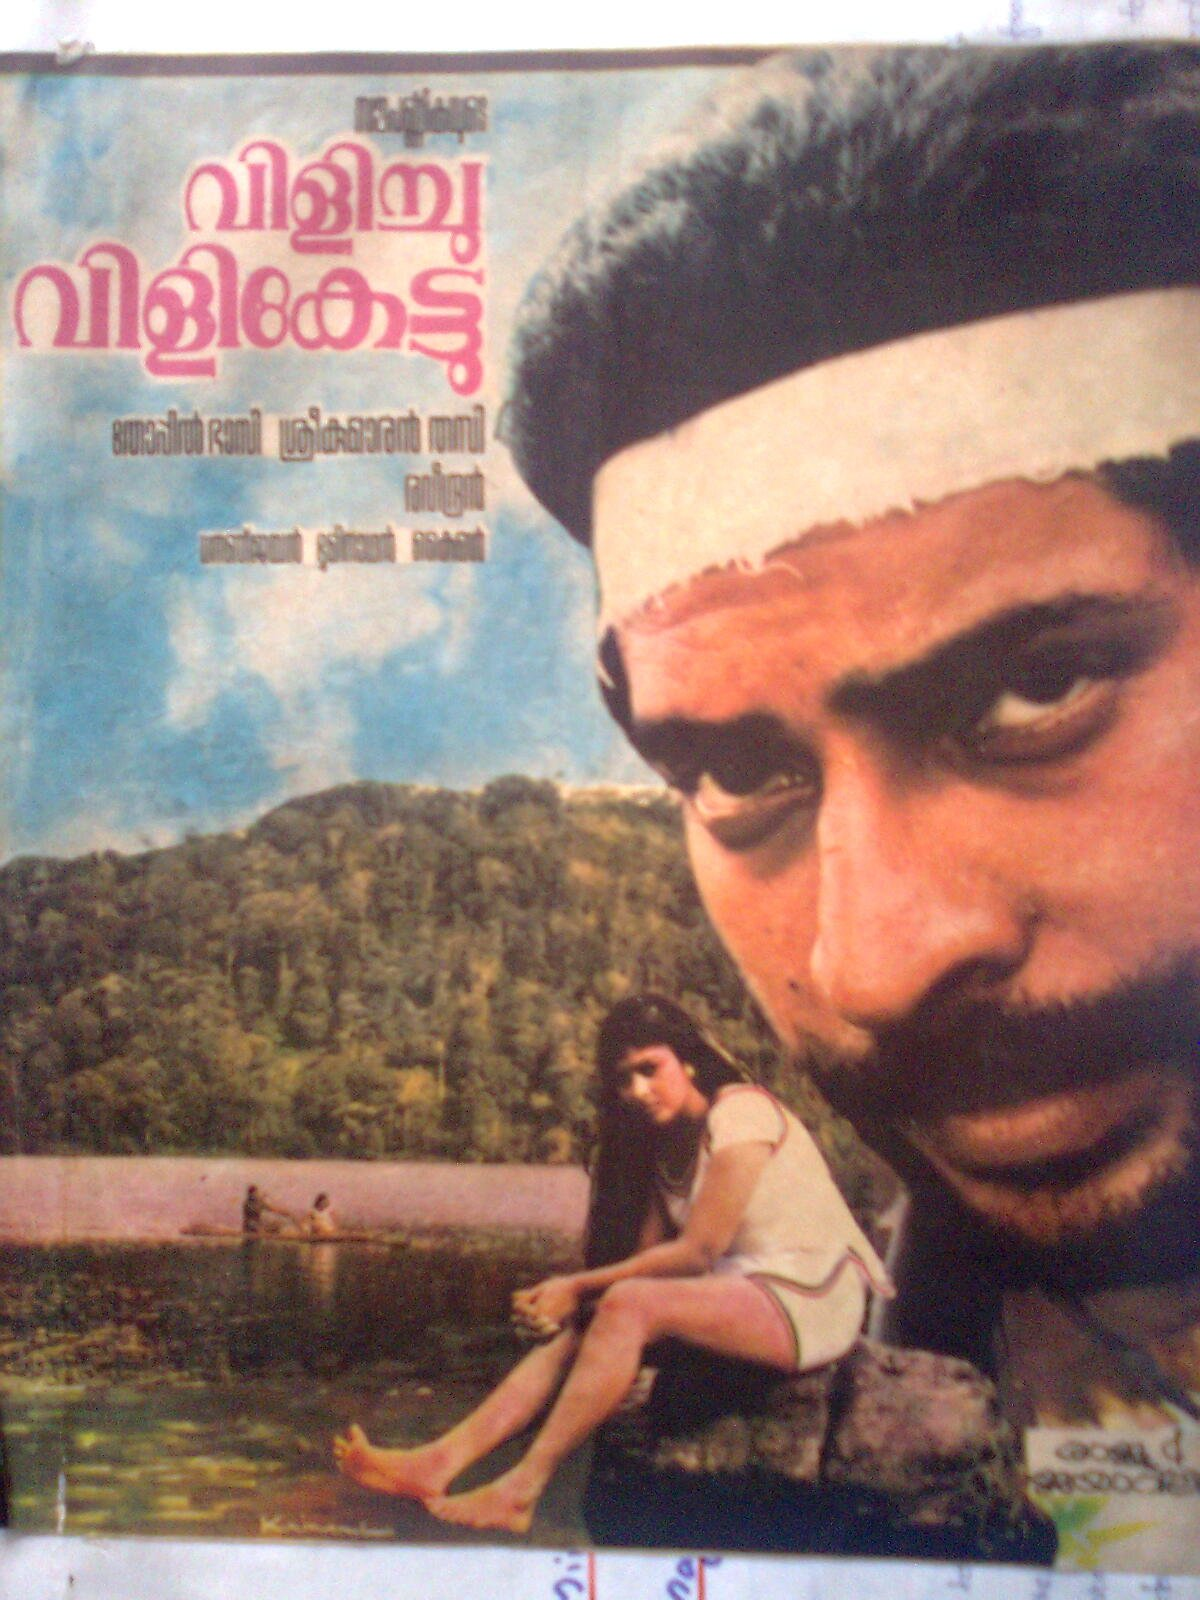 Vilichu Vilikettu Movie Poster